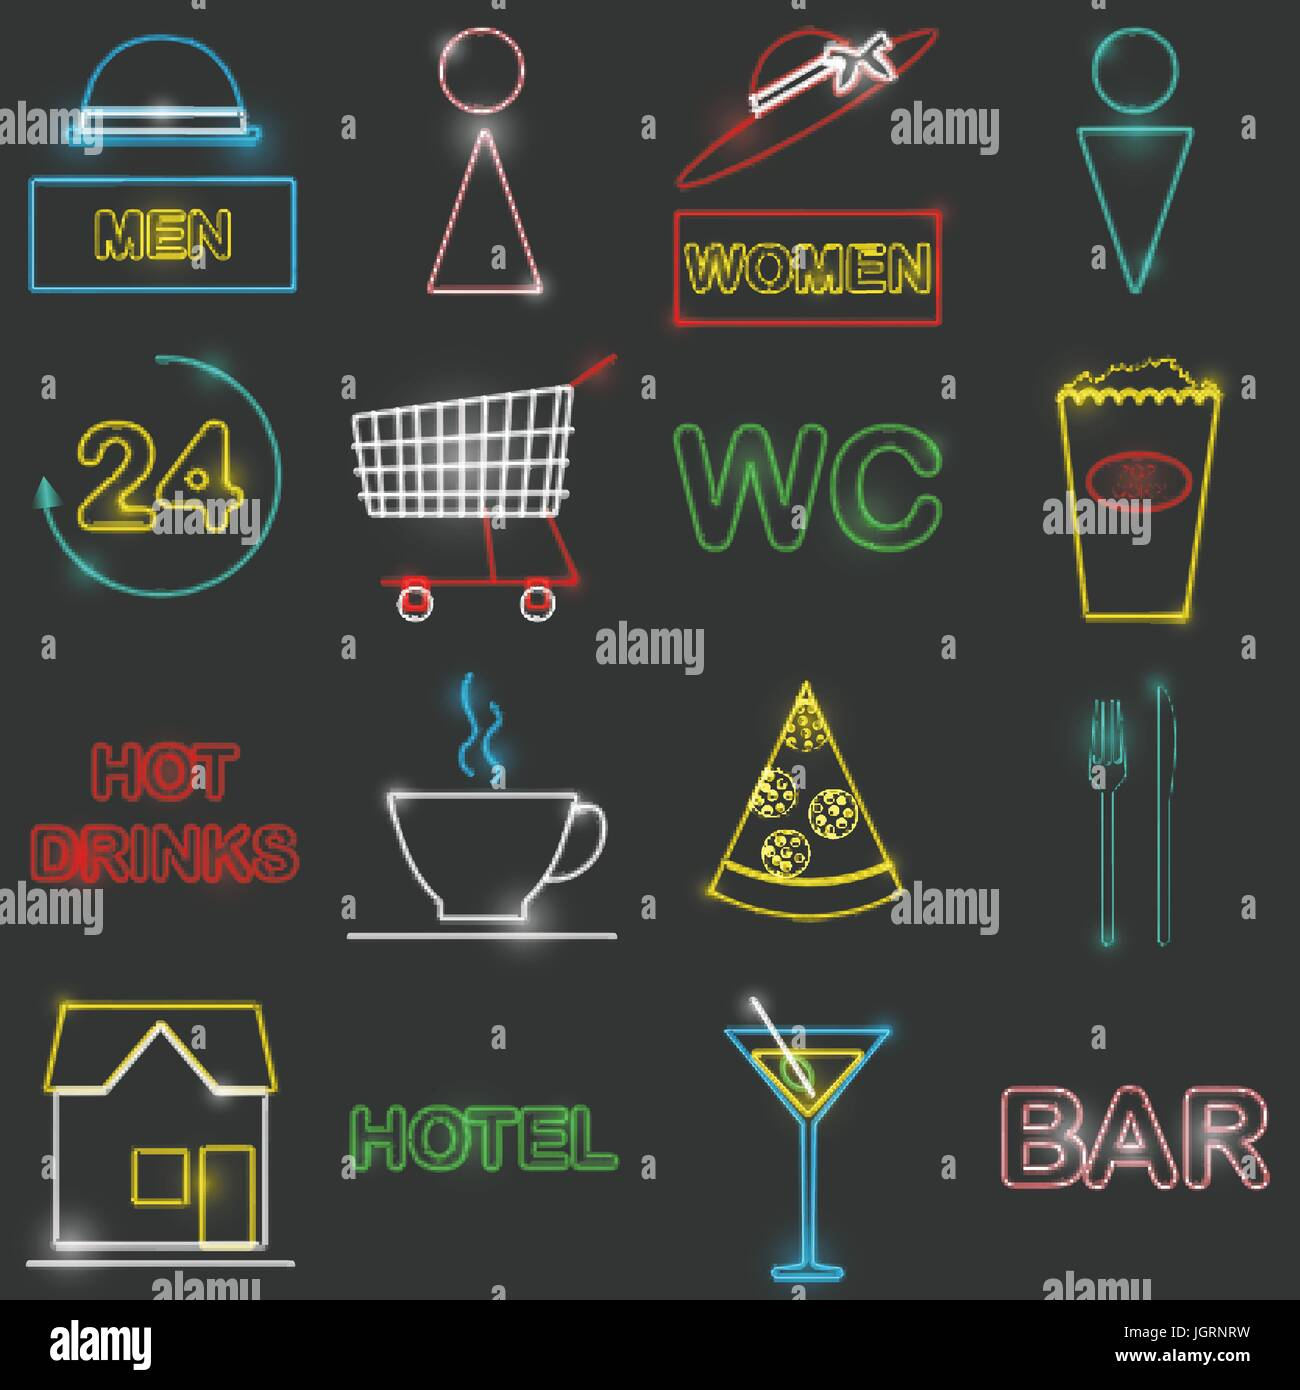 Neon icon set Vector illustration Colorful icons in form of neon